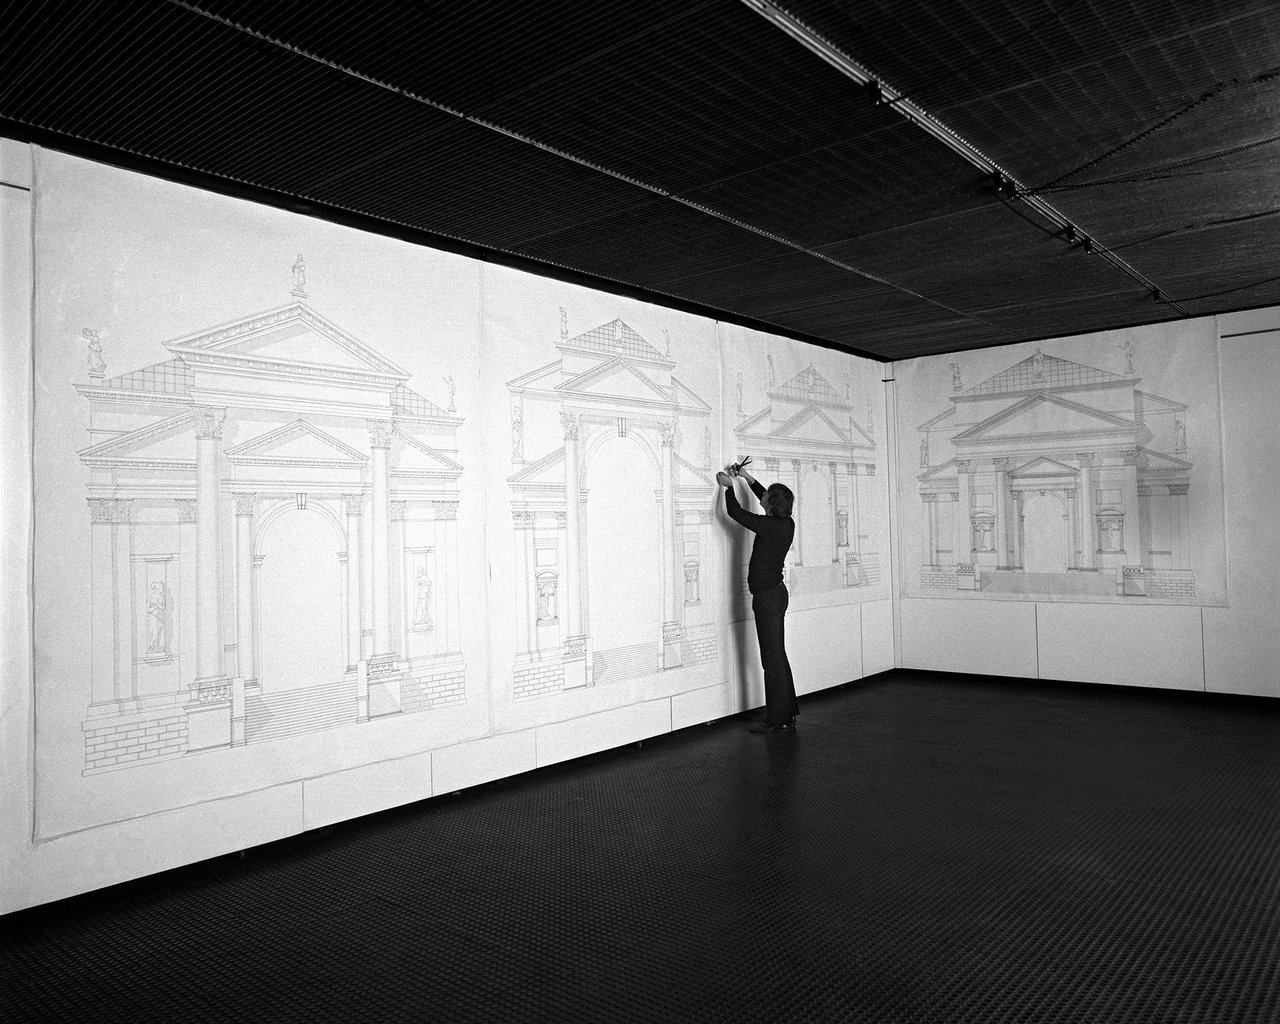 Luciano Fabro, 'Every Order is Contemporaneous of Every Other Order: Four Ways of Examining the Façade of the SS. Redentore in Venice', 1972